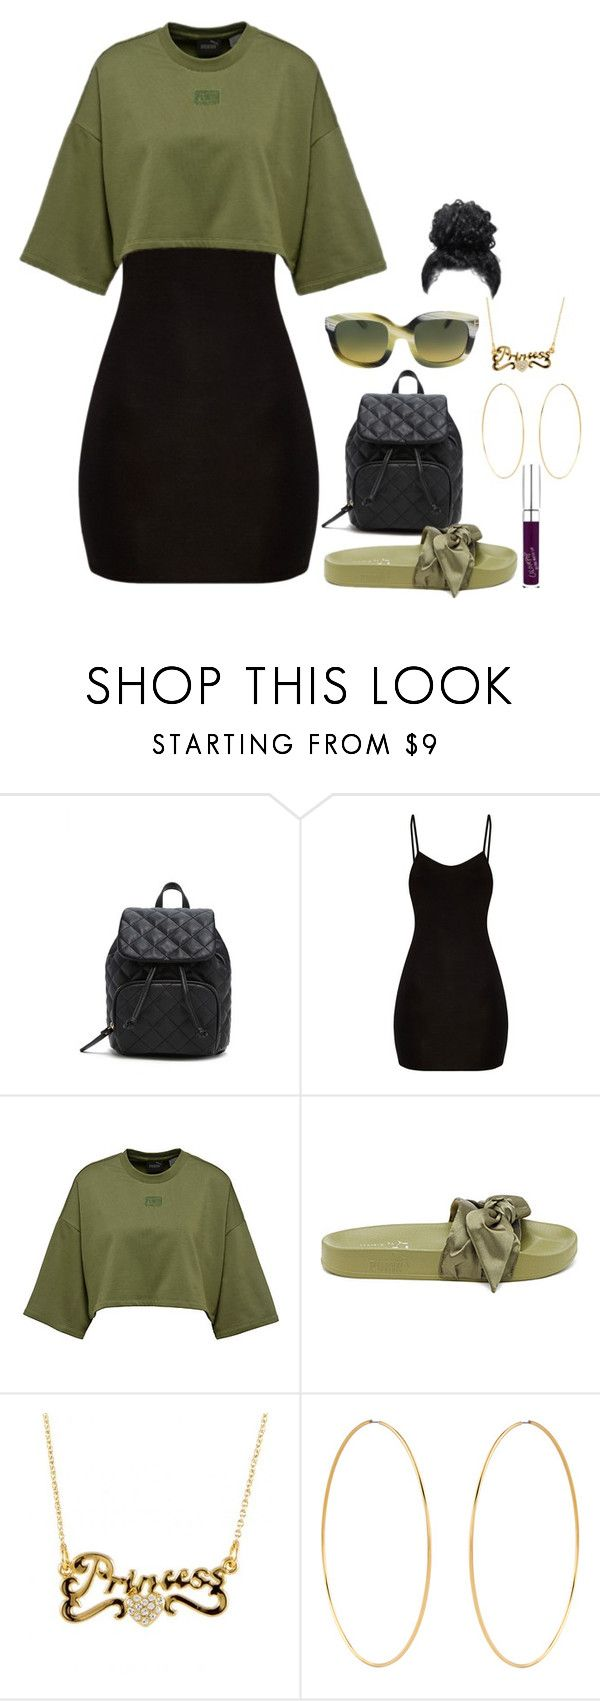 """"""""""" by miniurbanprincess ❤ liked on Polyvore featuring Forever 21, Puma, Tom Ford, Accessorize and GUESS"""